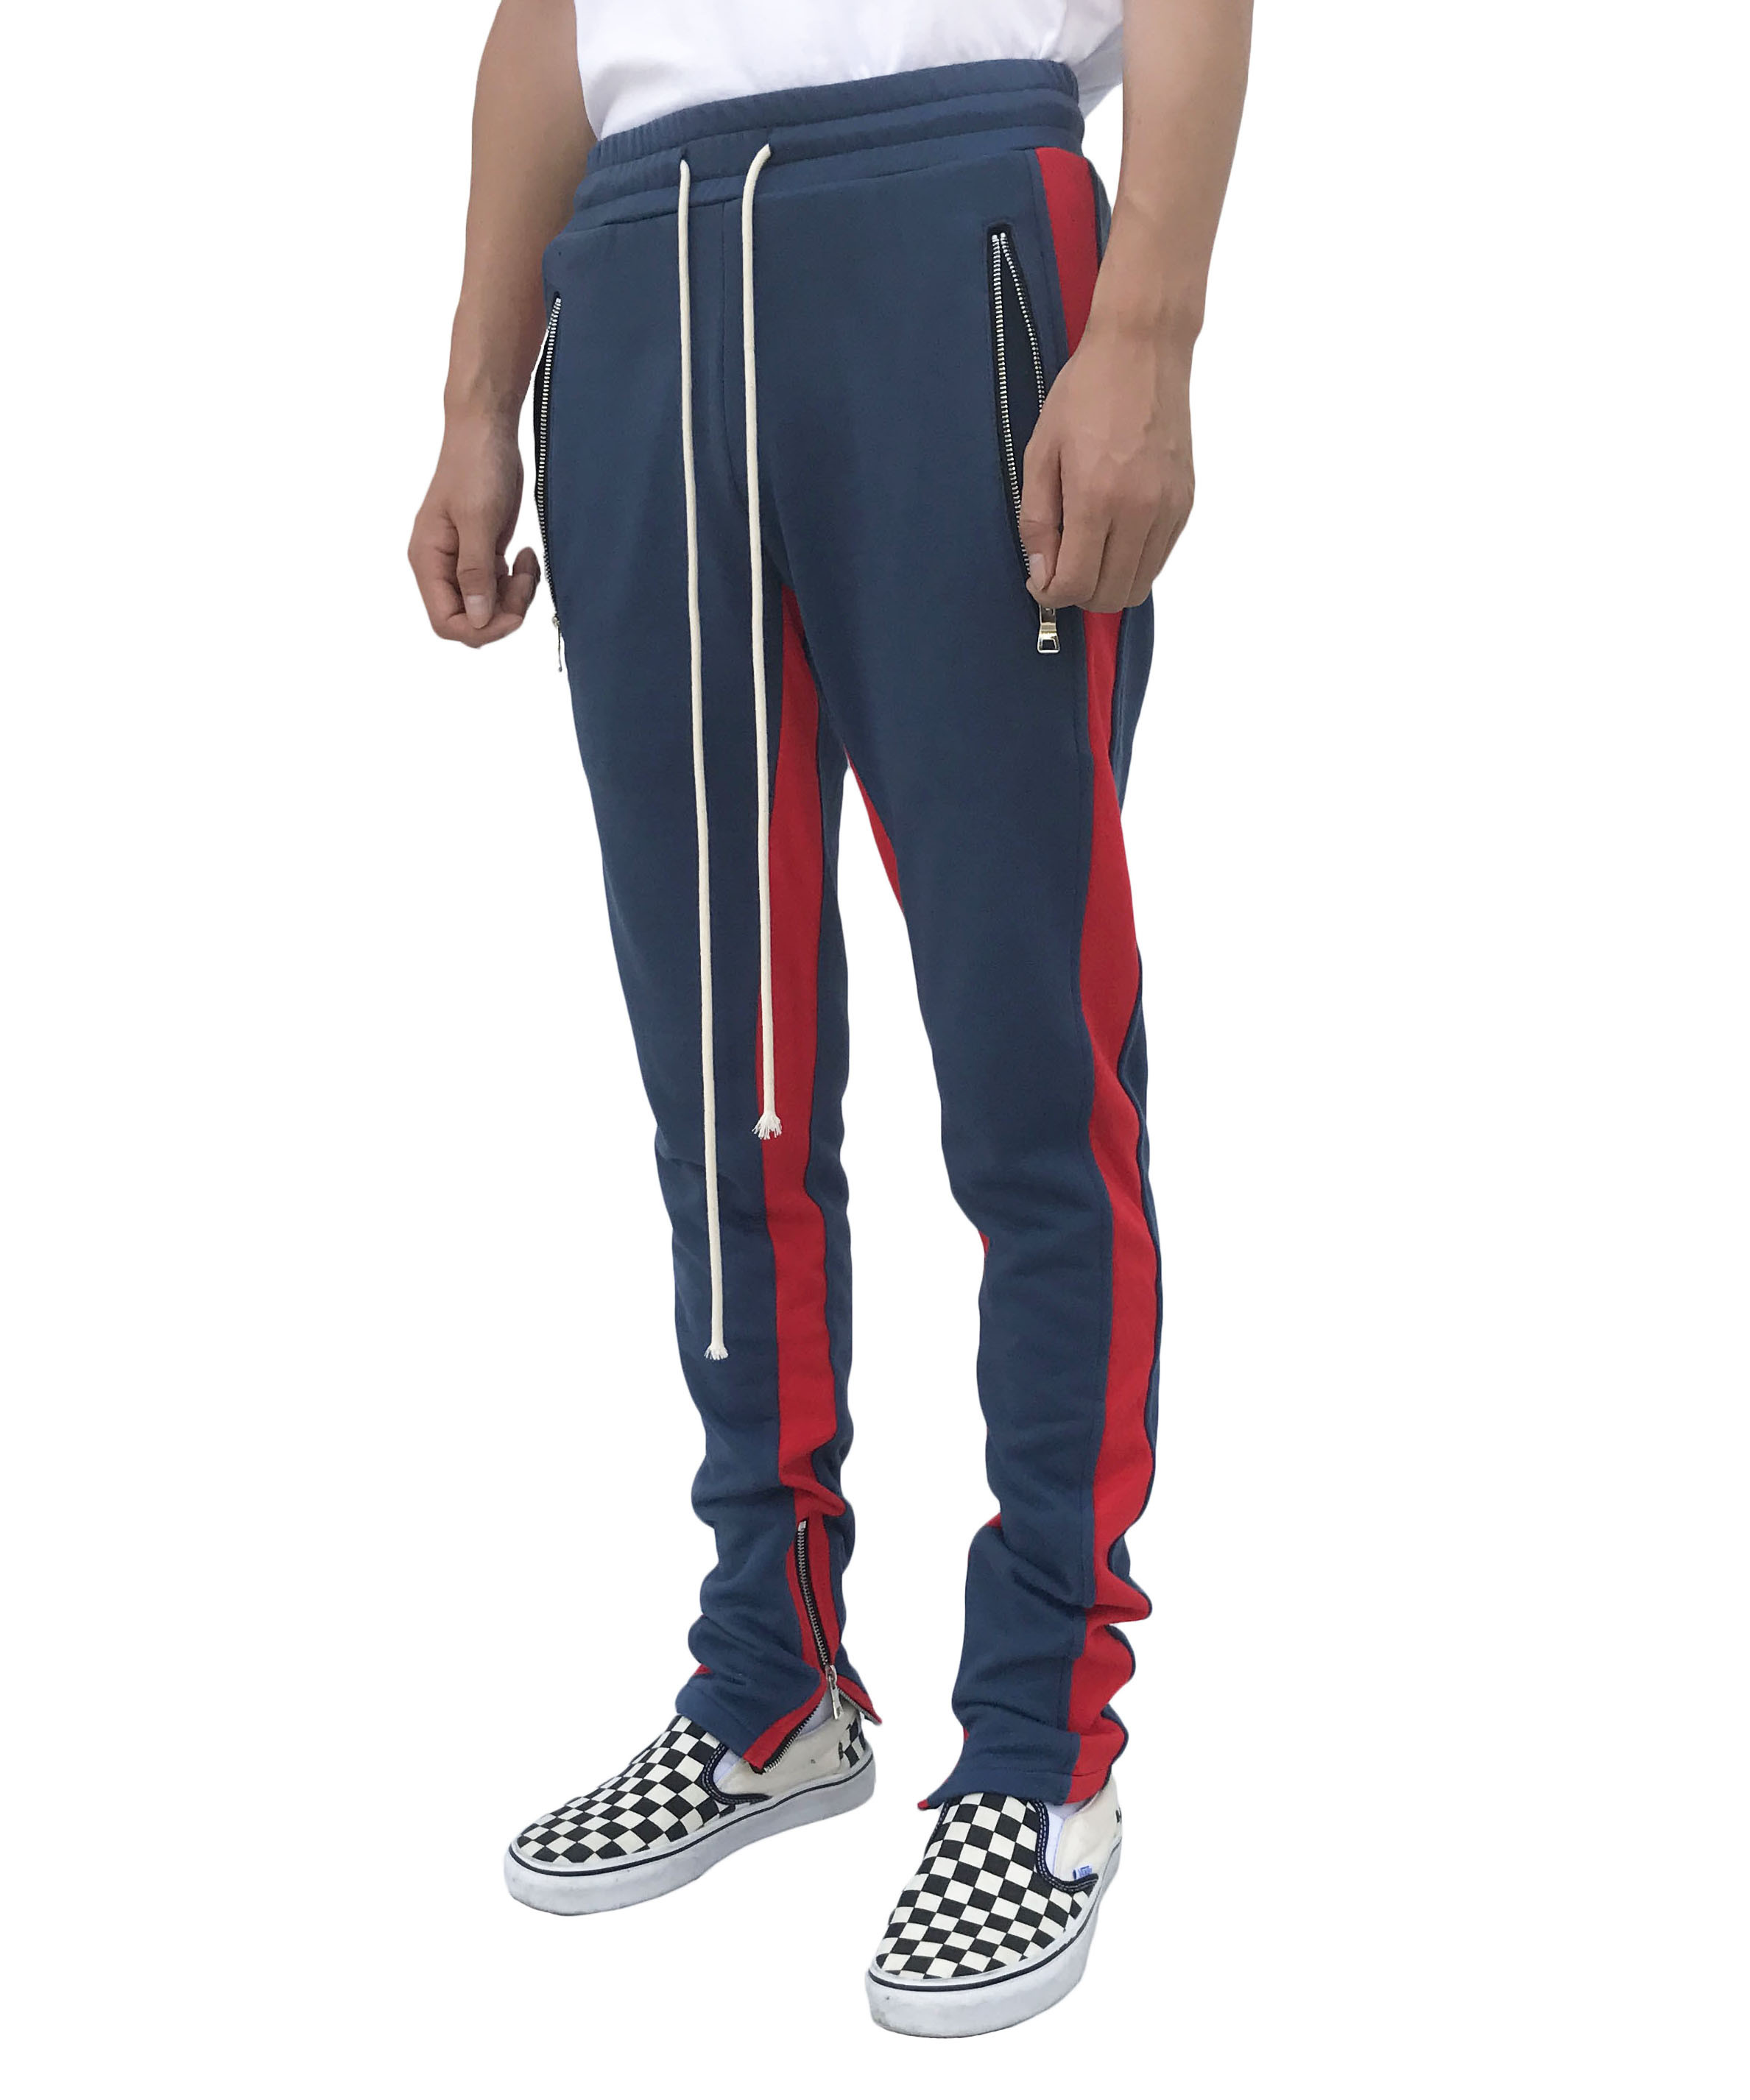 Double Striped Track Pant - Navy/Red